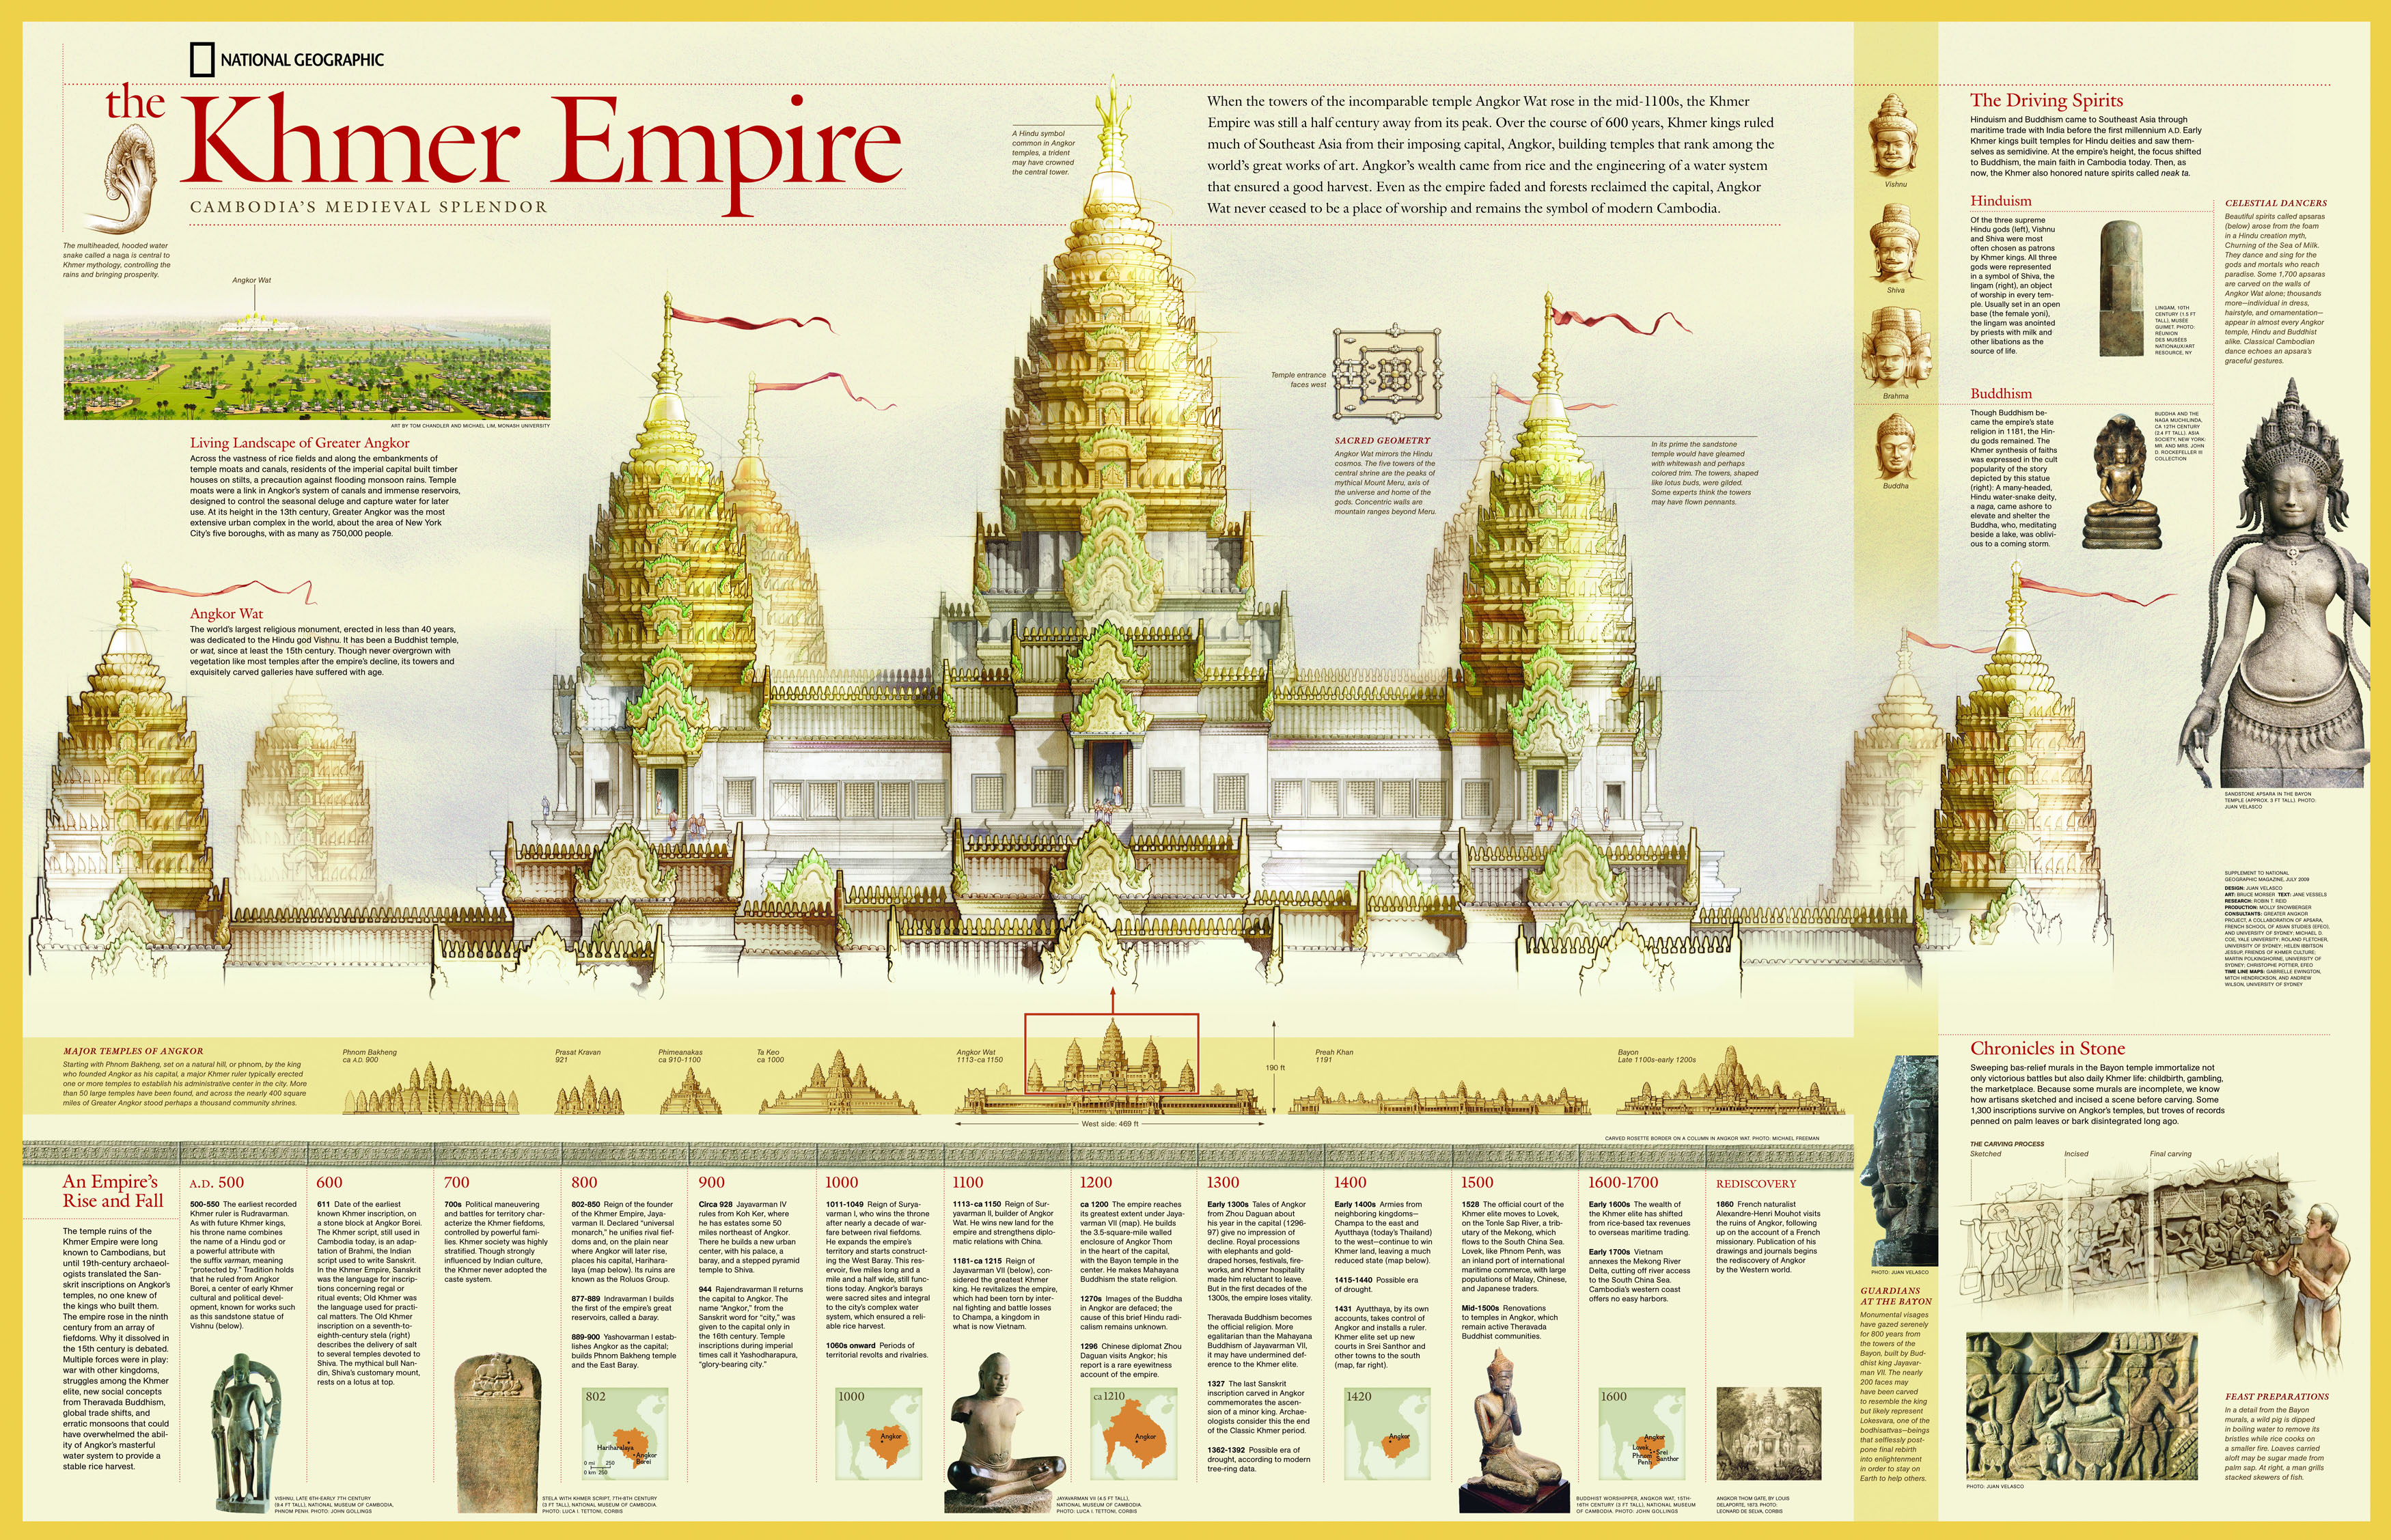 lost city of khmer empire